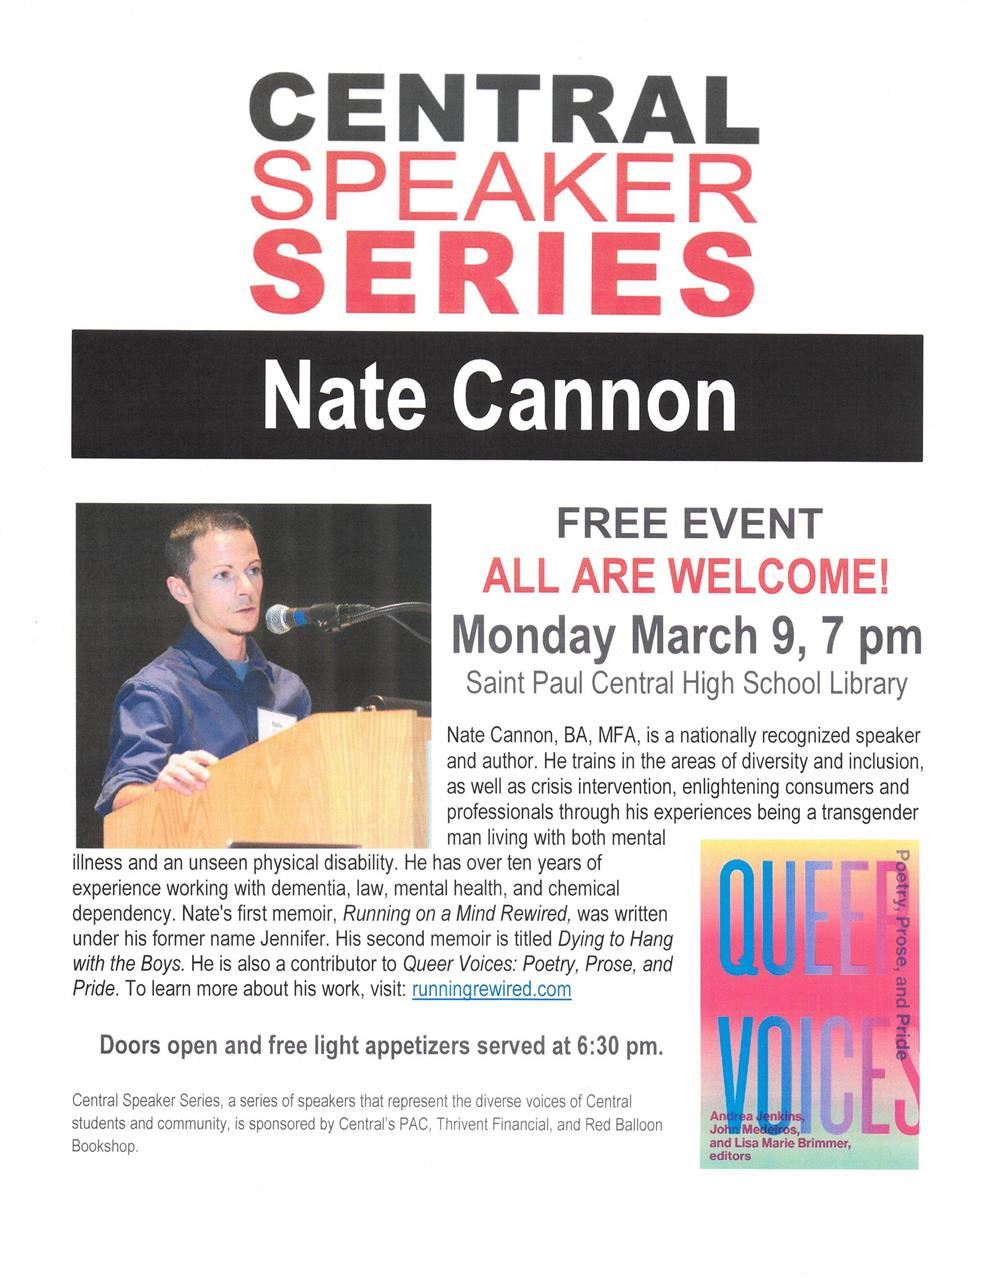 Central Speaker Series - Author talk - Nate Cannon